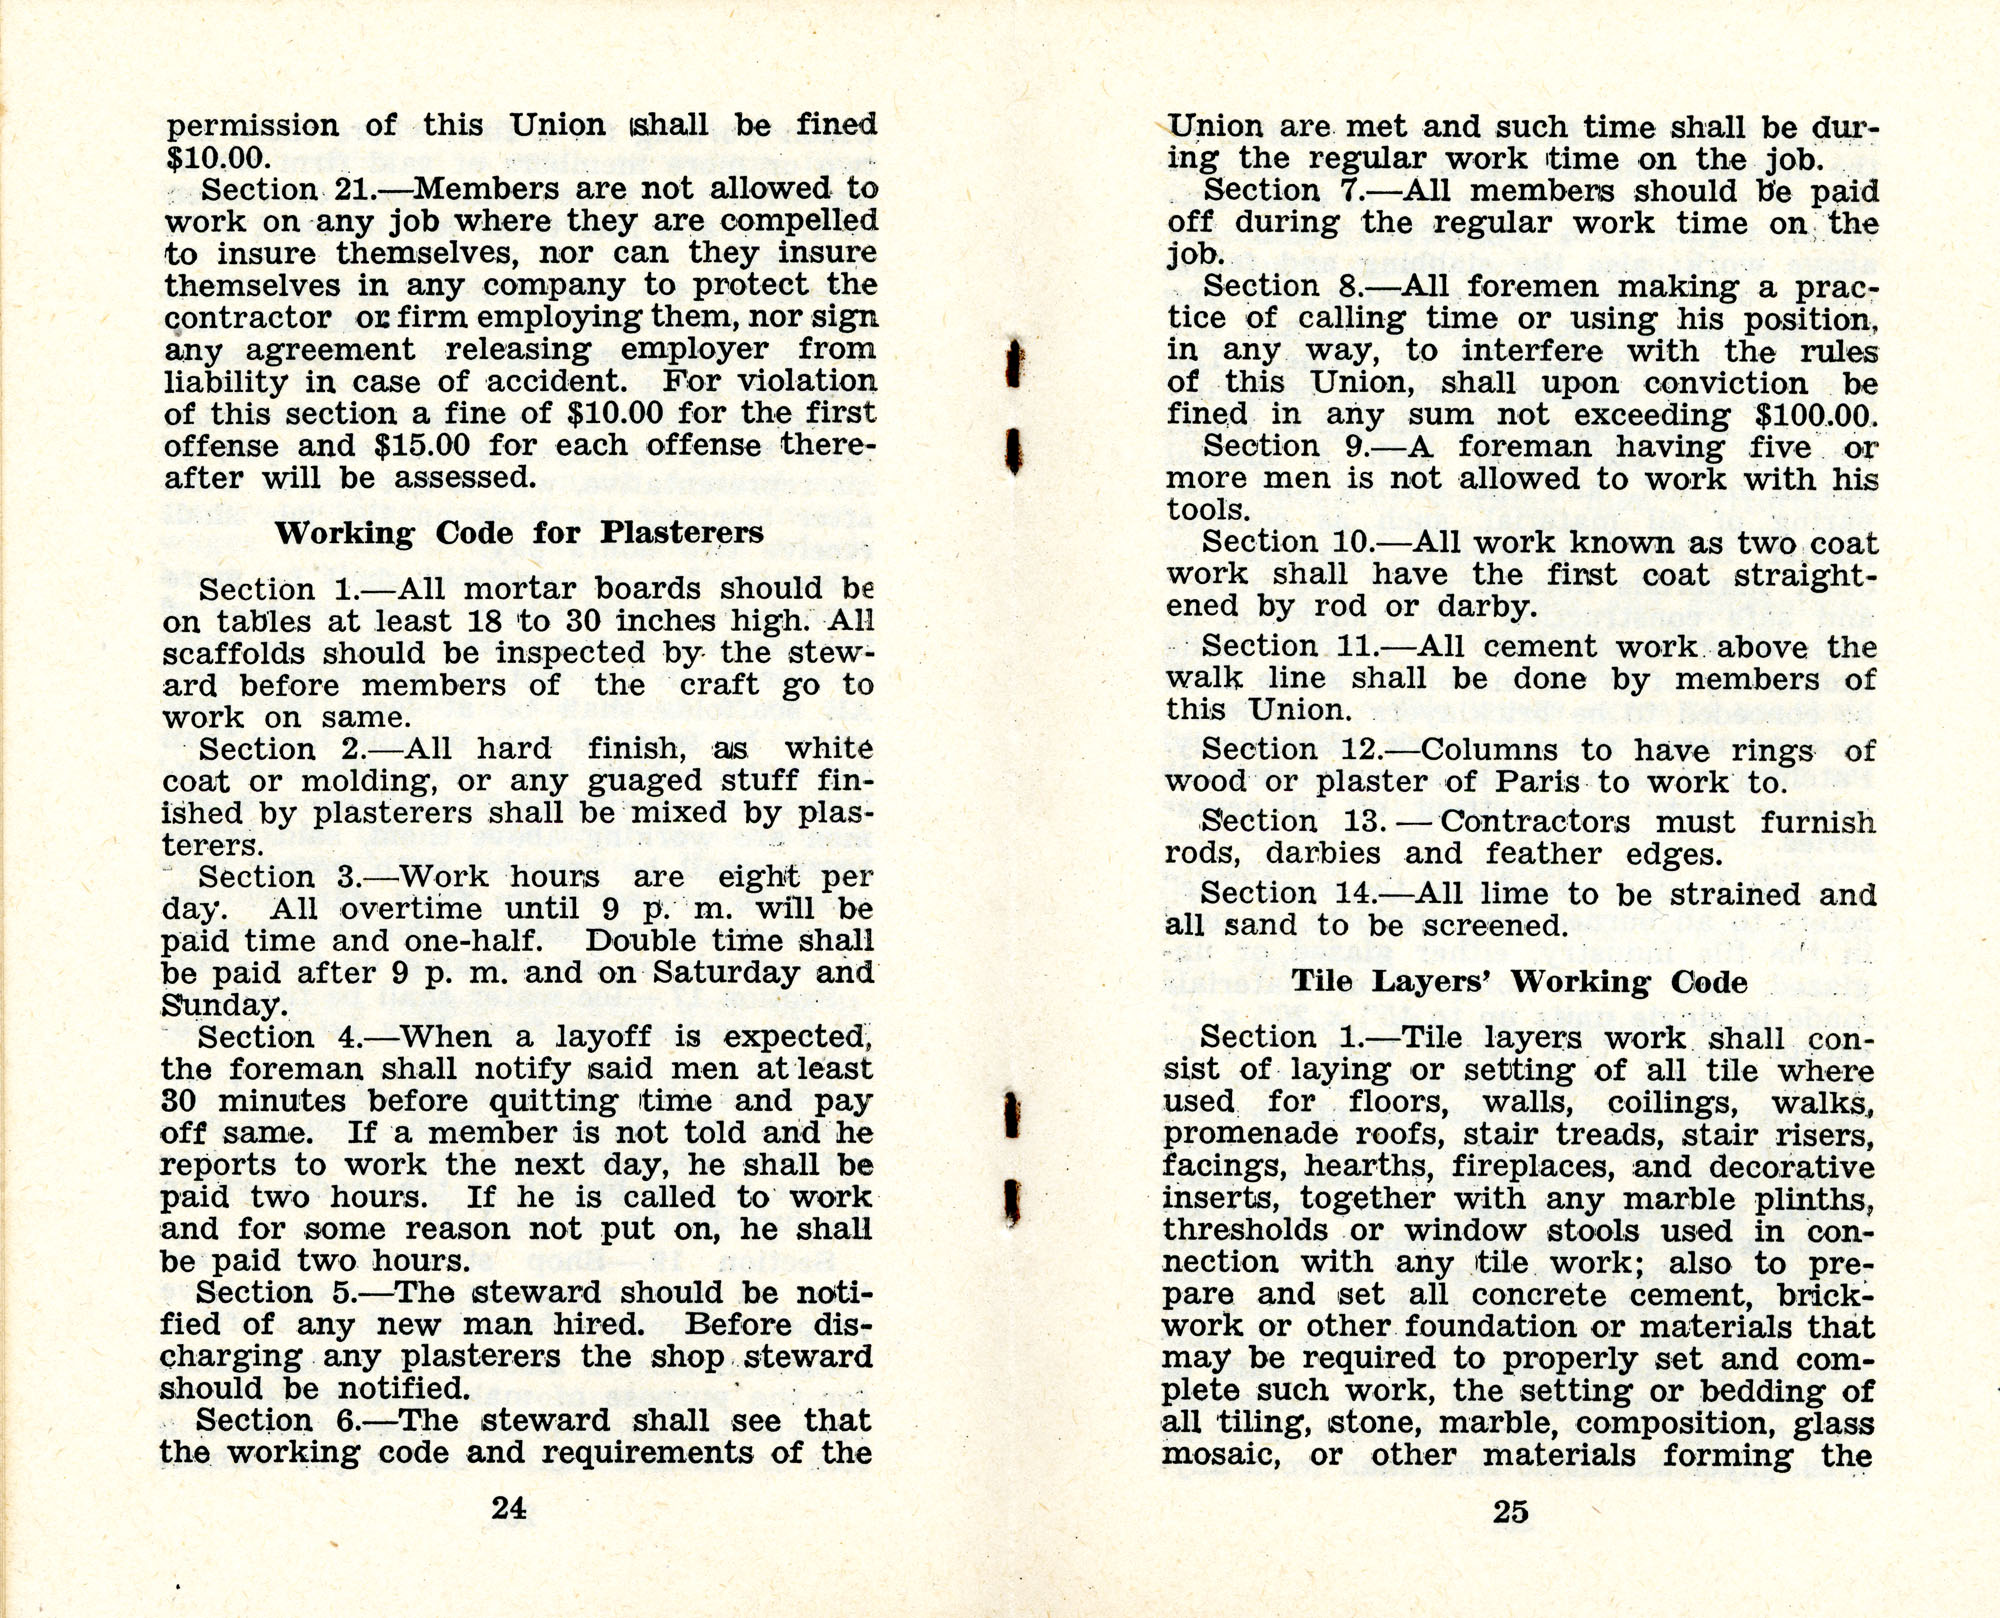 Constitution and by-laws of unions no.1 and 10, Page 13